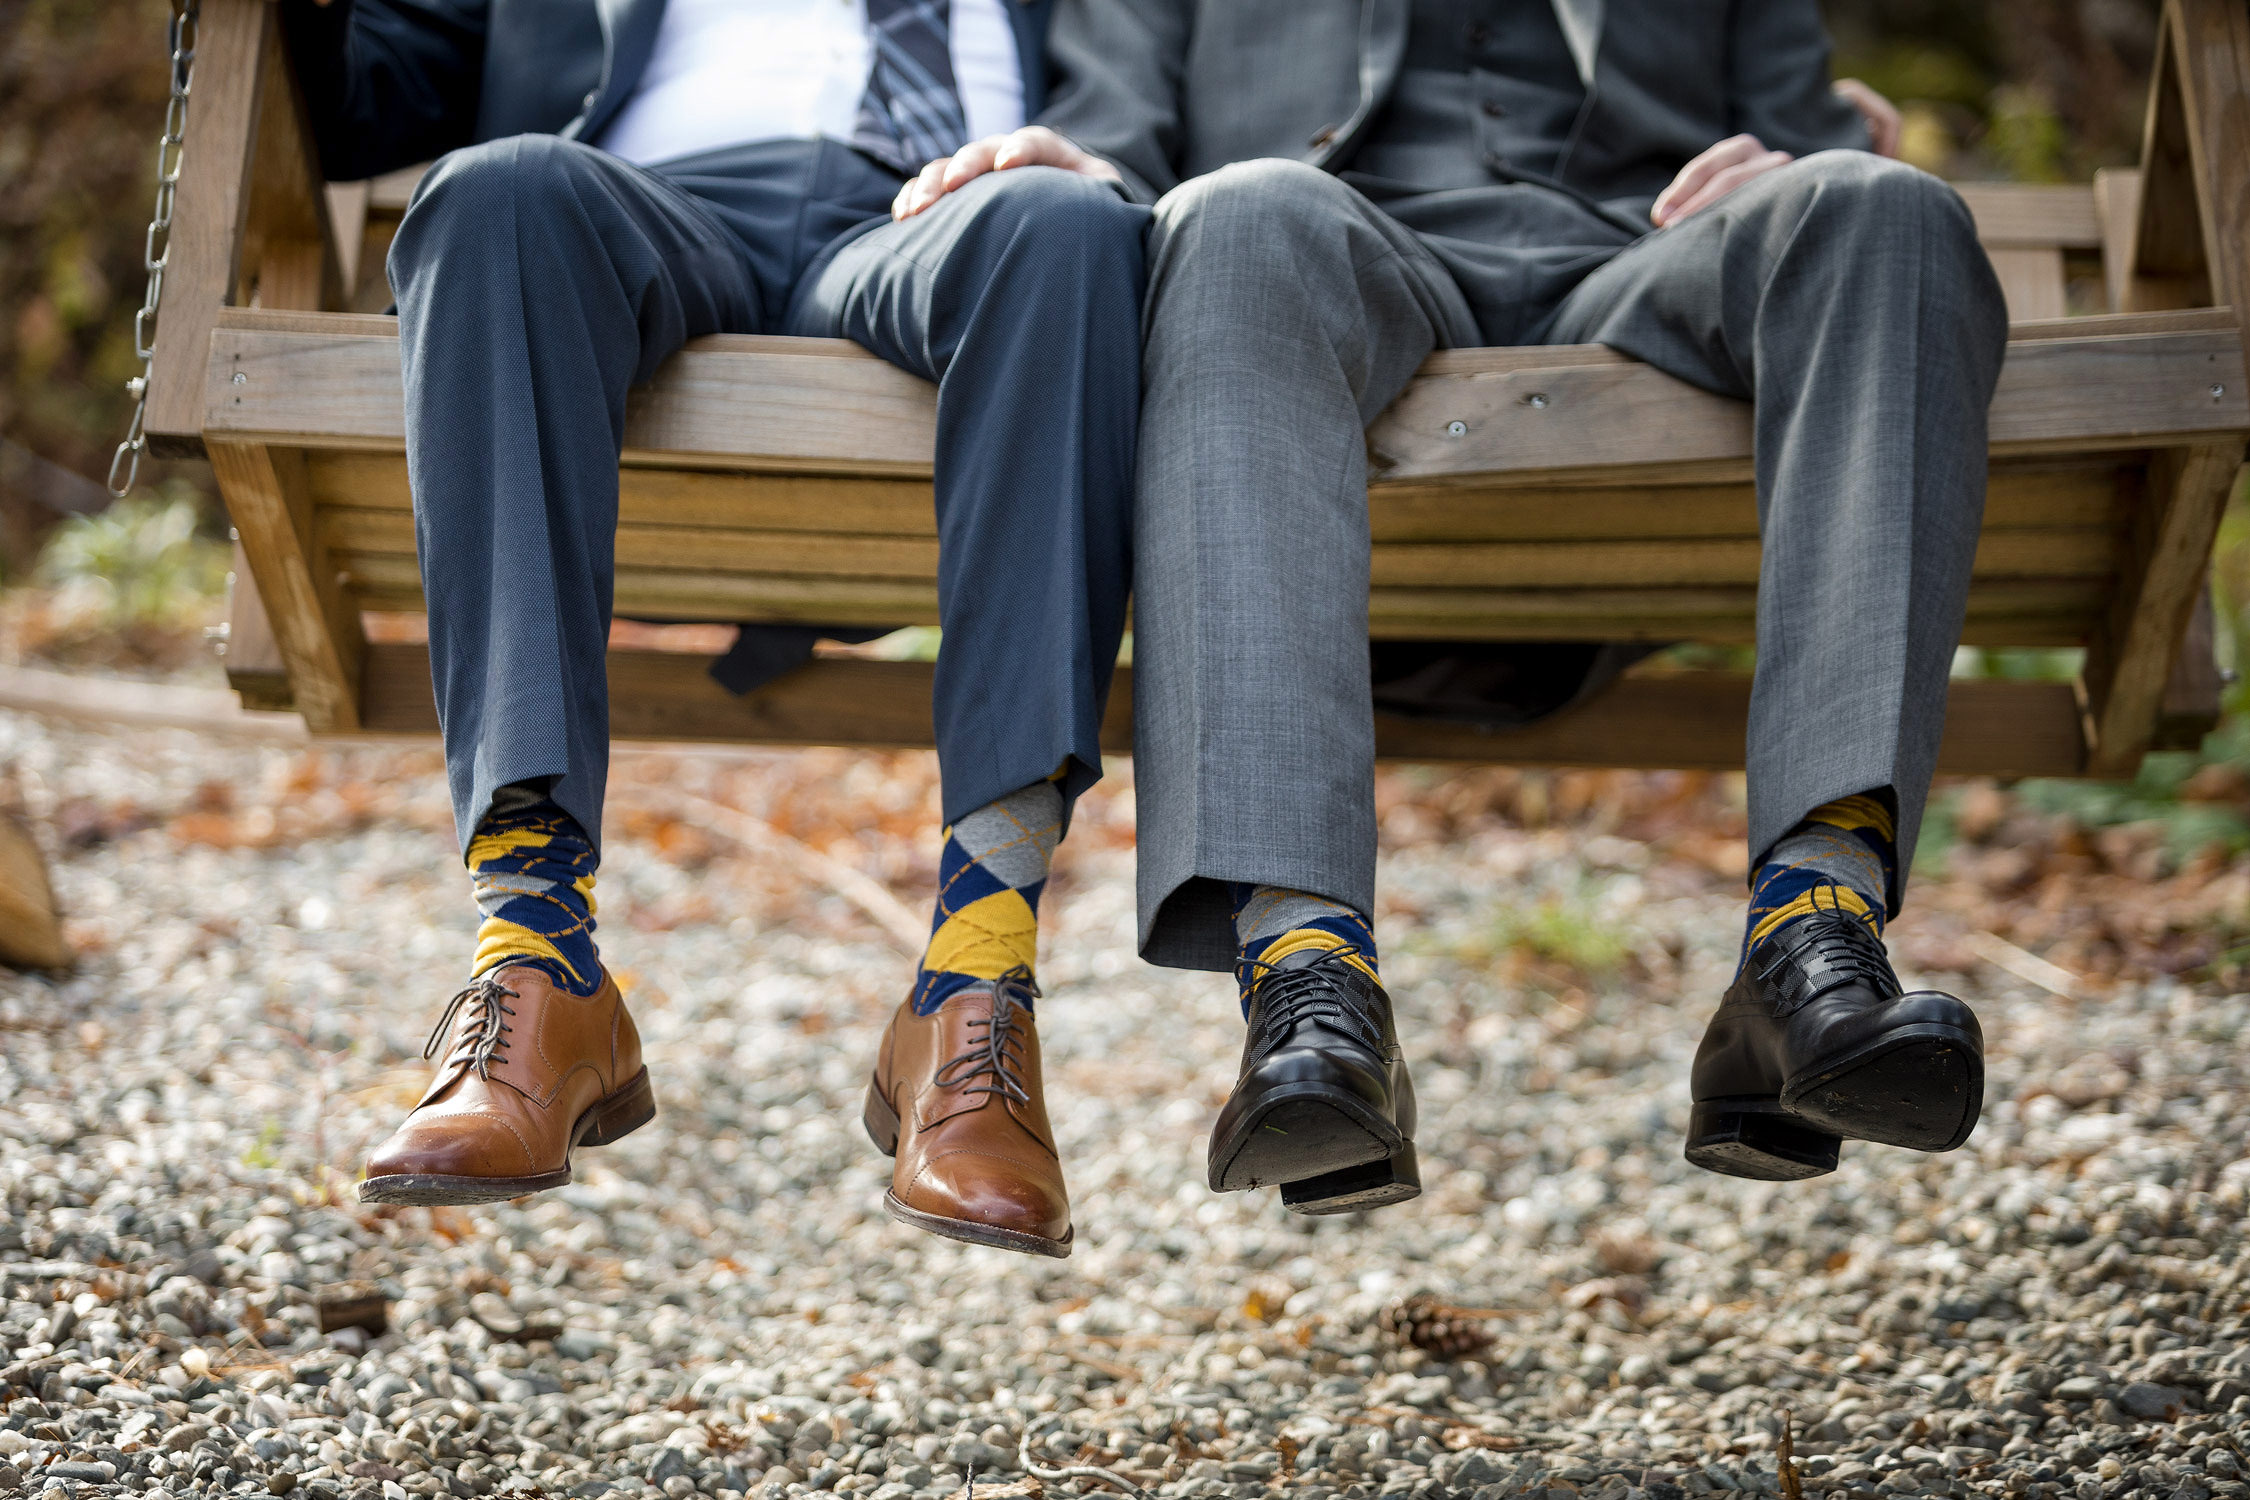 The feet of a gay couple sitting together on a wooden swing